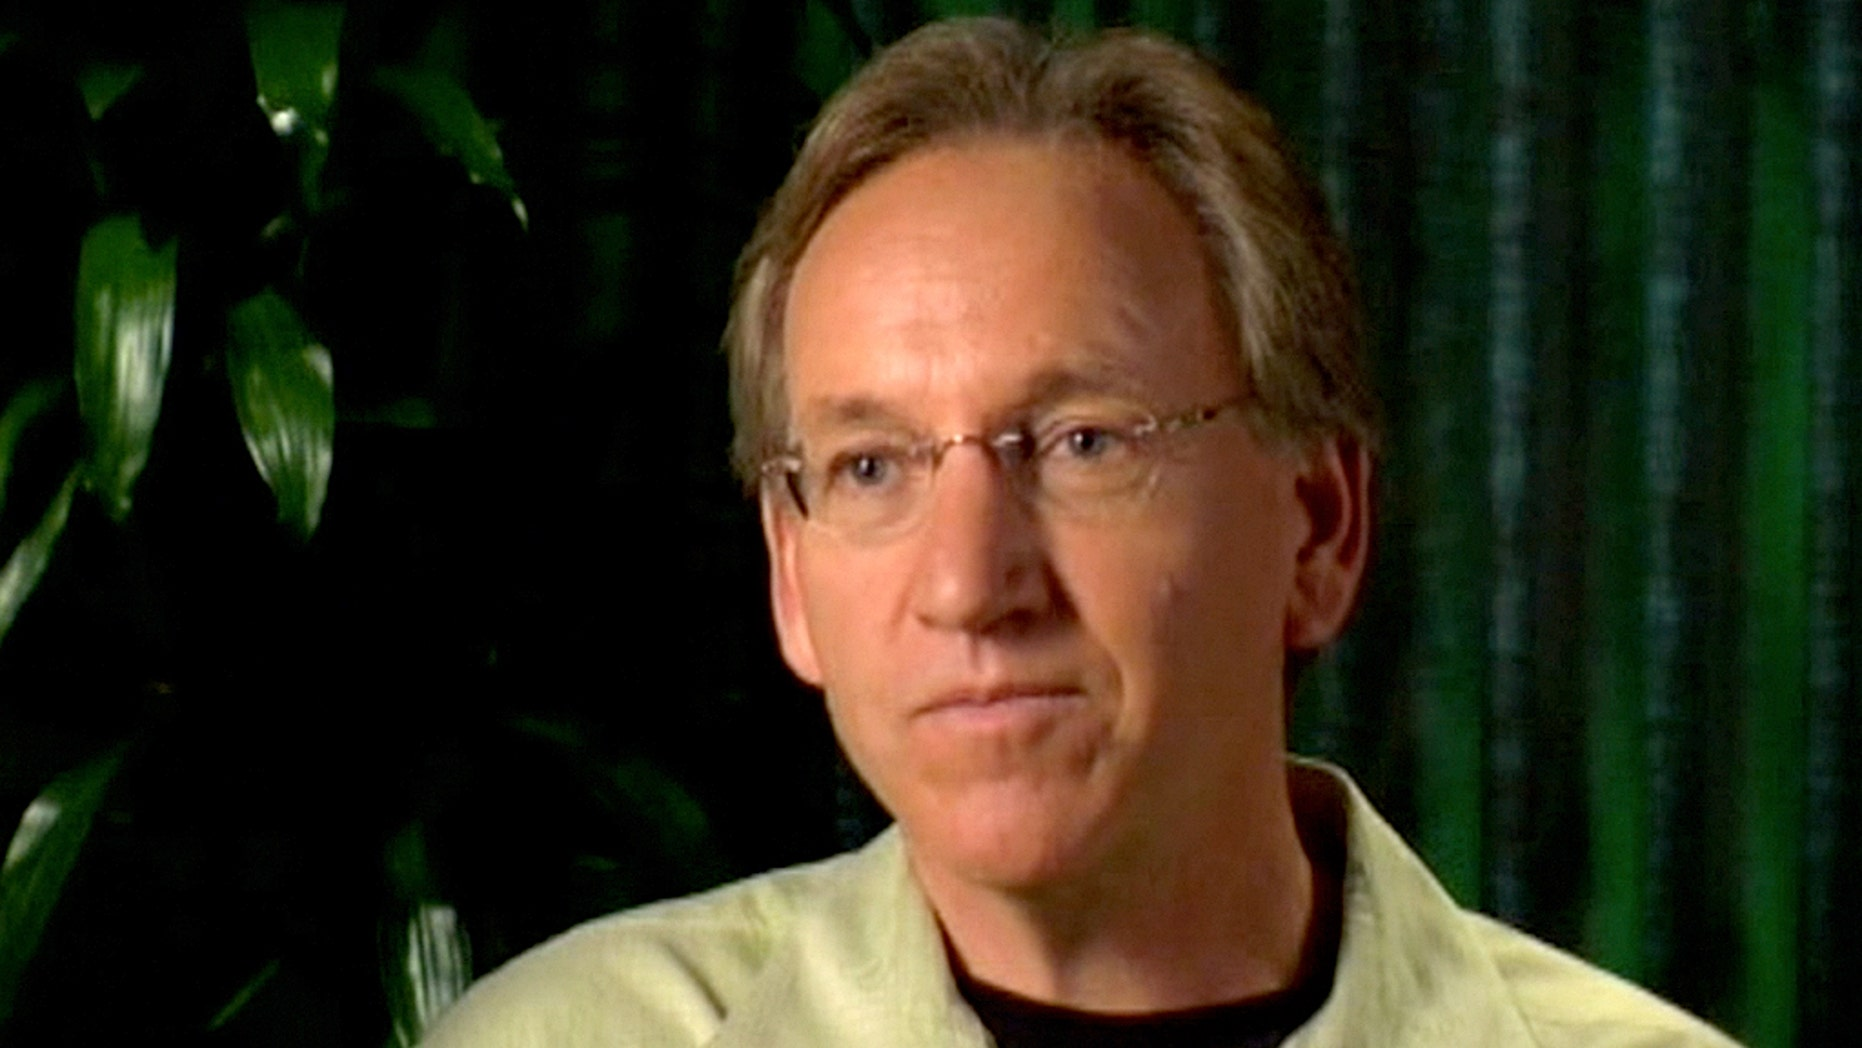 Veteran CBS Producer Brad Kern Fired Amid Misconduct Allegations